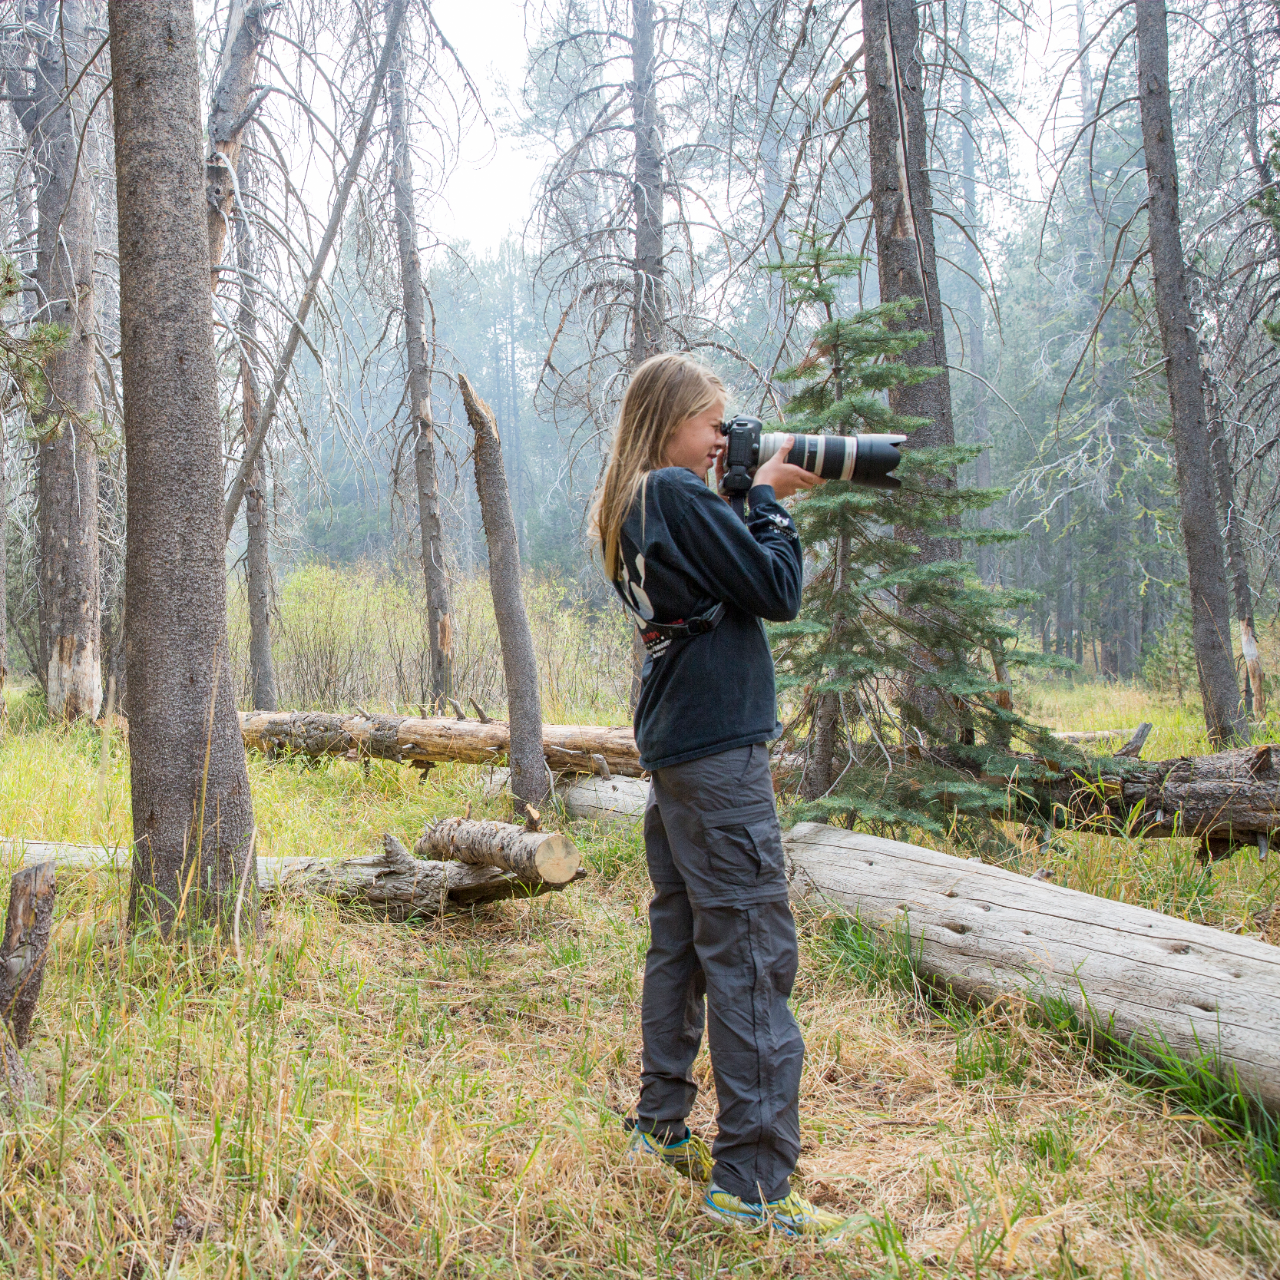 Girl standing in forest taking photo with large camera